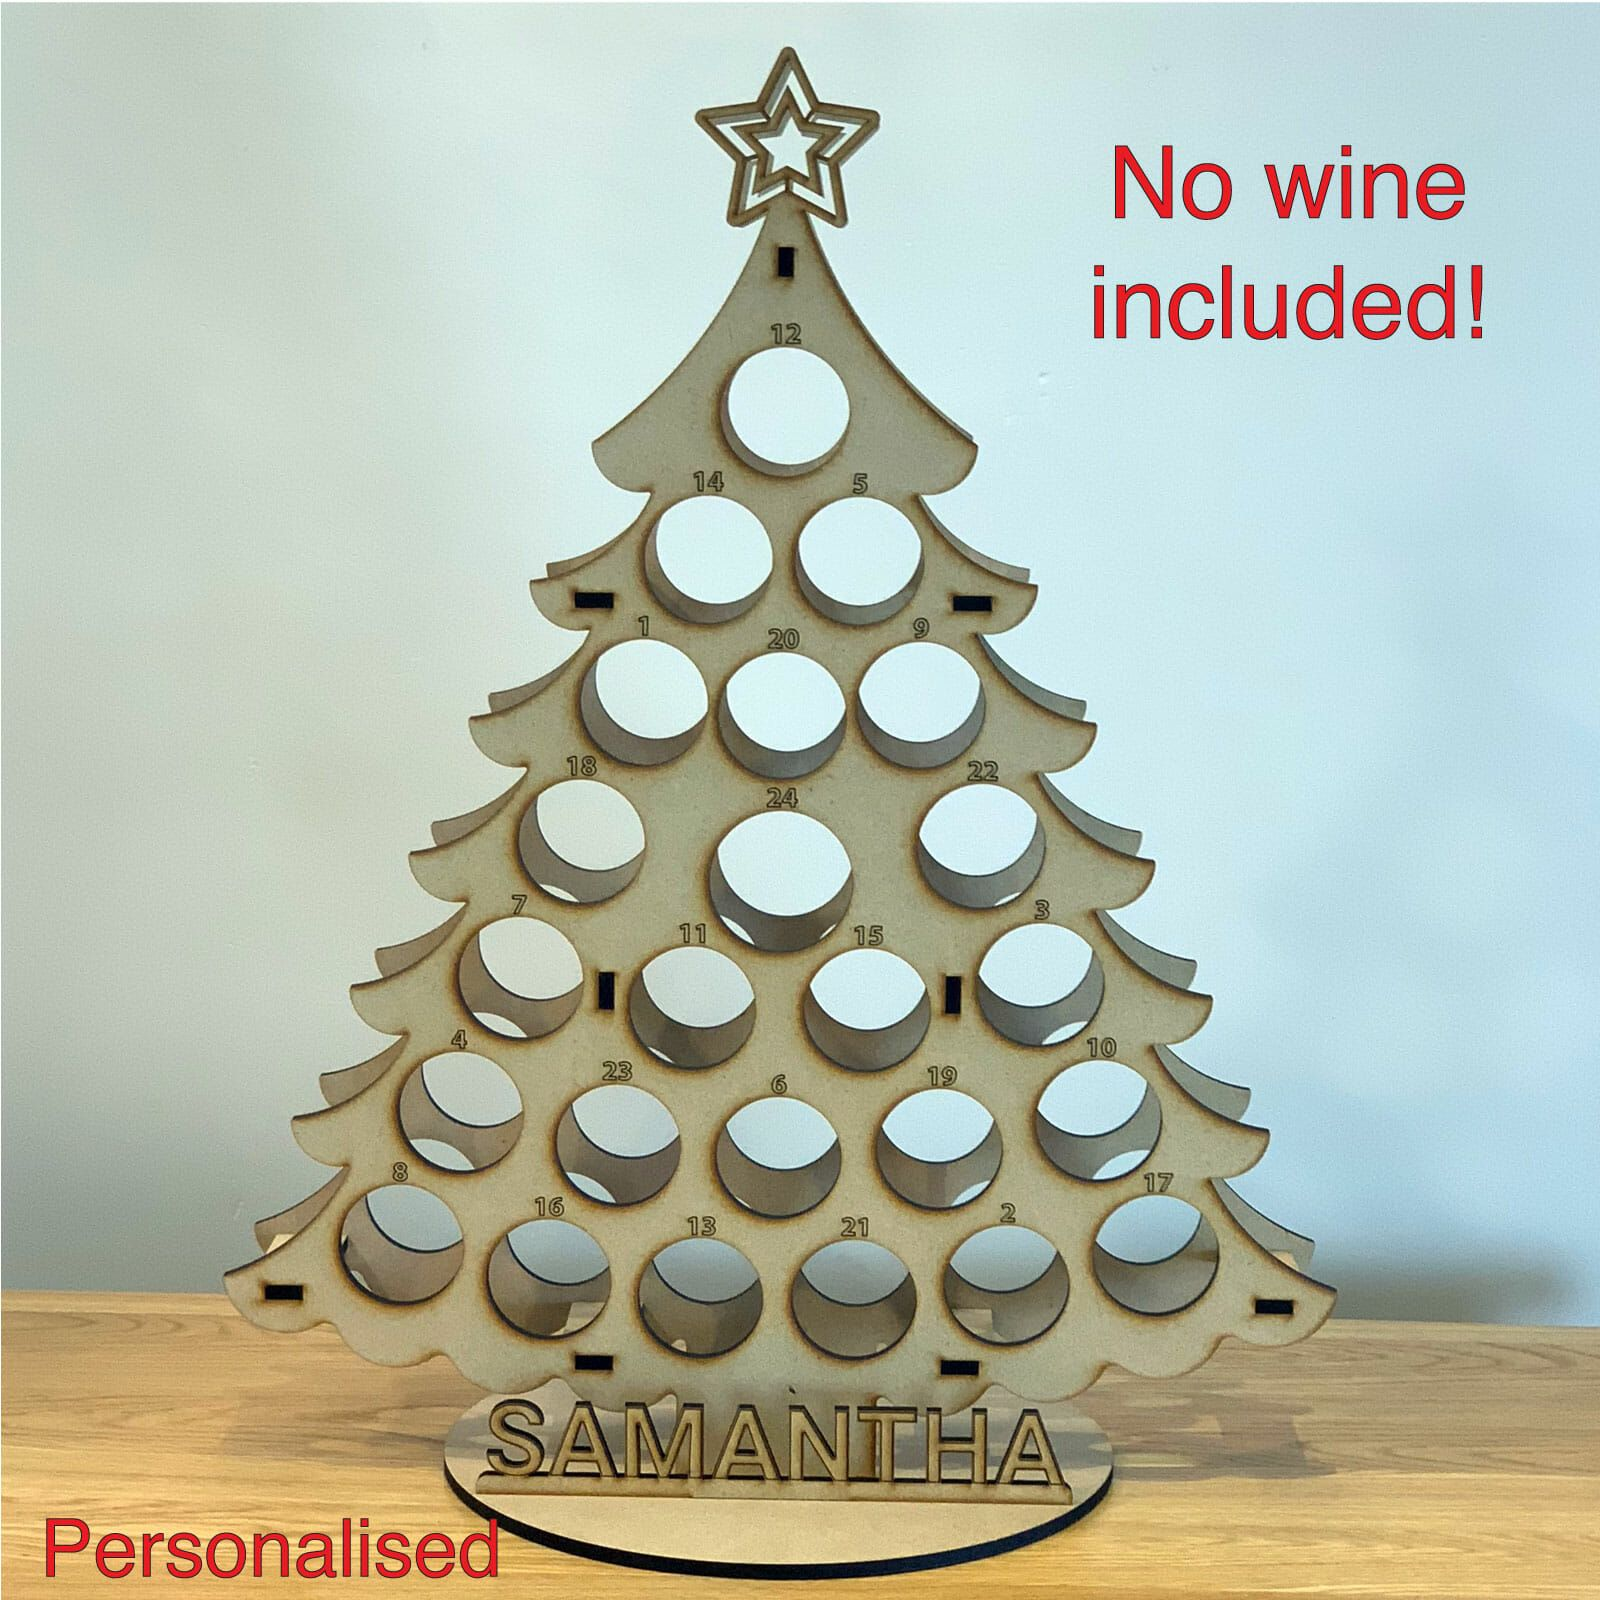 Miniature Wine Bottle Tree Adult Advent Calendar - Nicely Personalised - December 2019 #wineadventcalendardiy